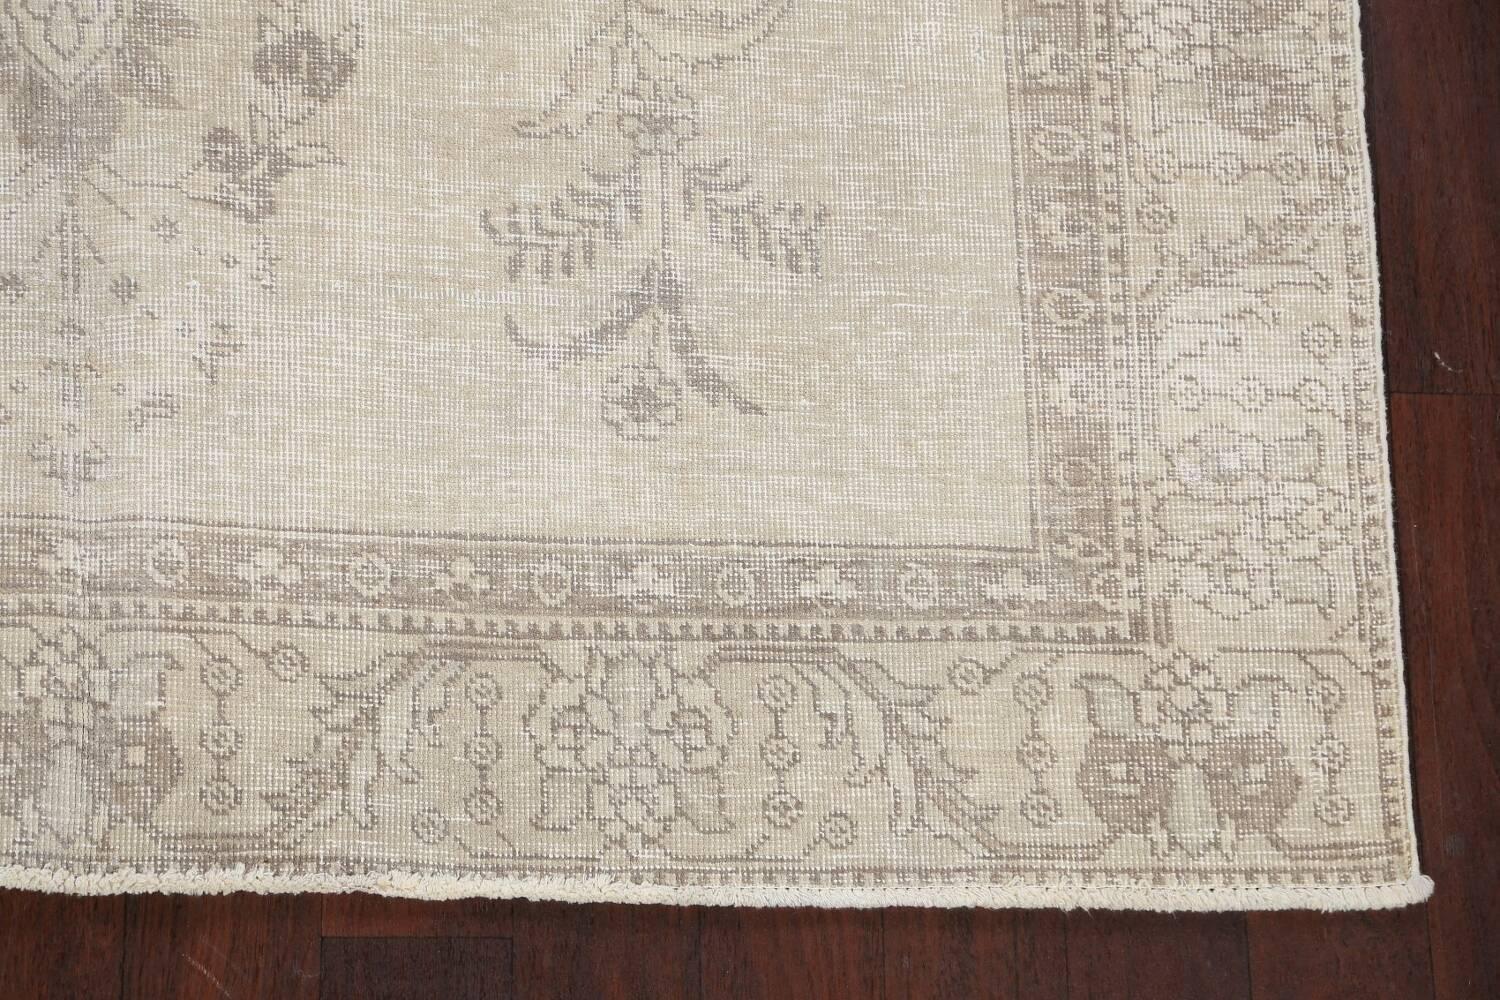 Muted Distressed Floral Tabriz Persian Area Rug 6x9 image 5